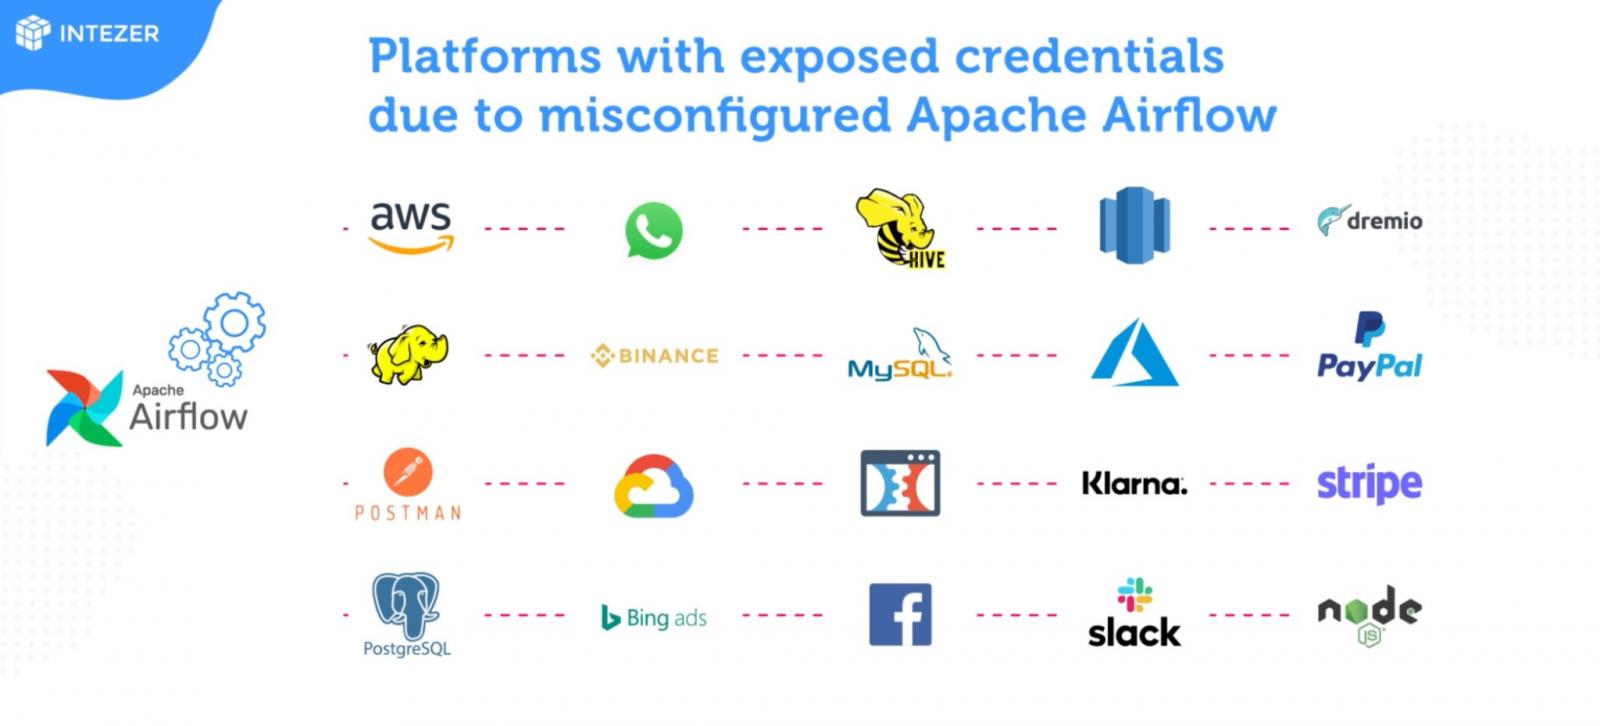 services and platforms leaking creds